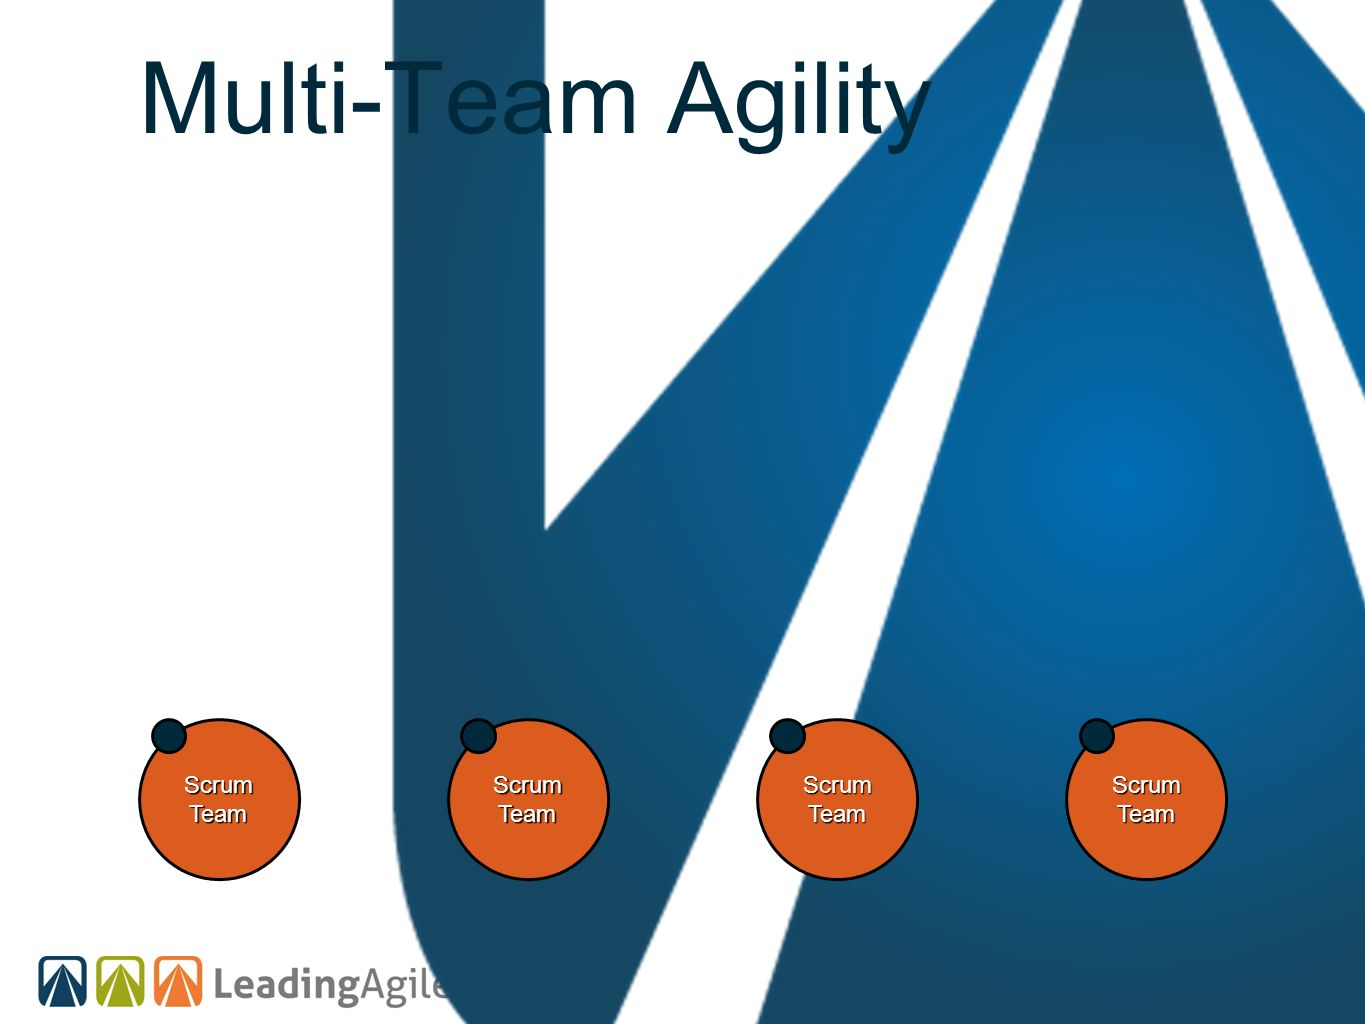 Multi-Team Agility Scrum Team Scrum Team Scrum Team Scrum Team